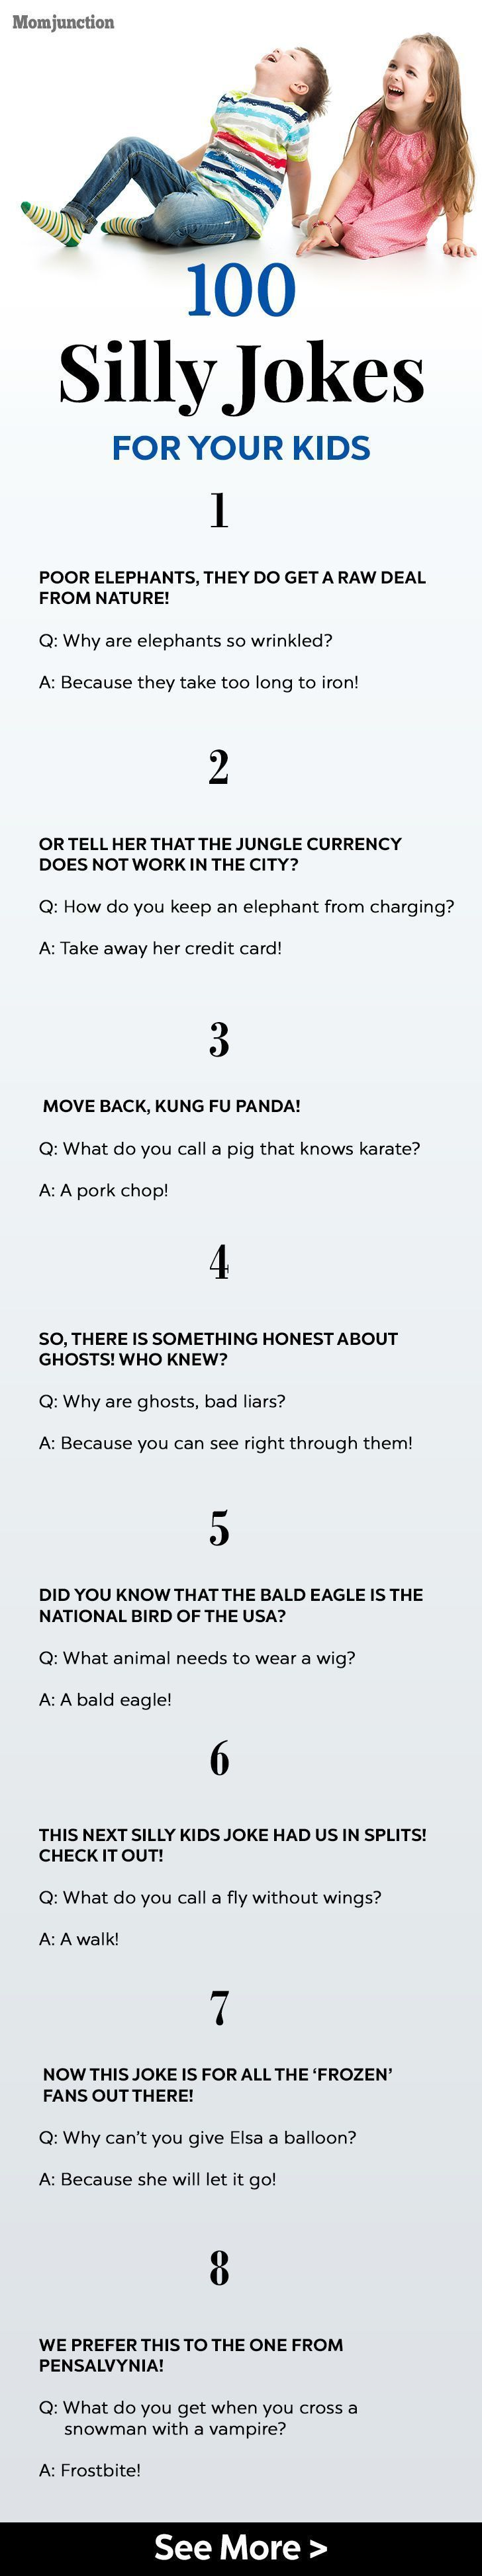 2265d4f9e36c42c117ae0c33a7d5d735 100 Silly Jokes For Your Kids: Here are some clean, silly and funny jokes for ki...